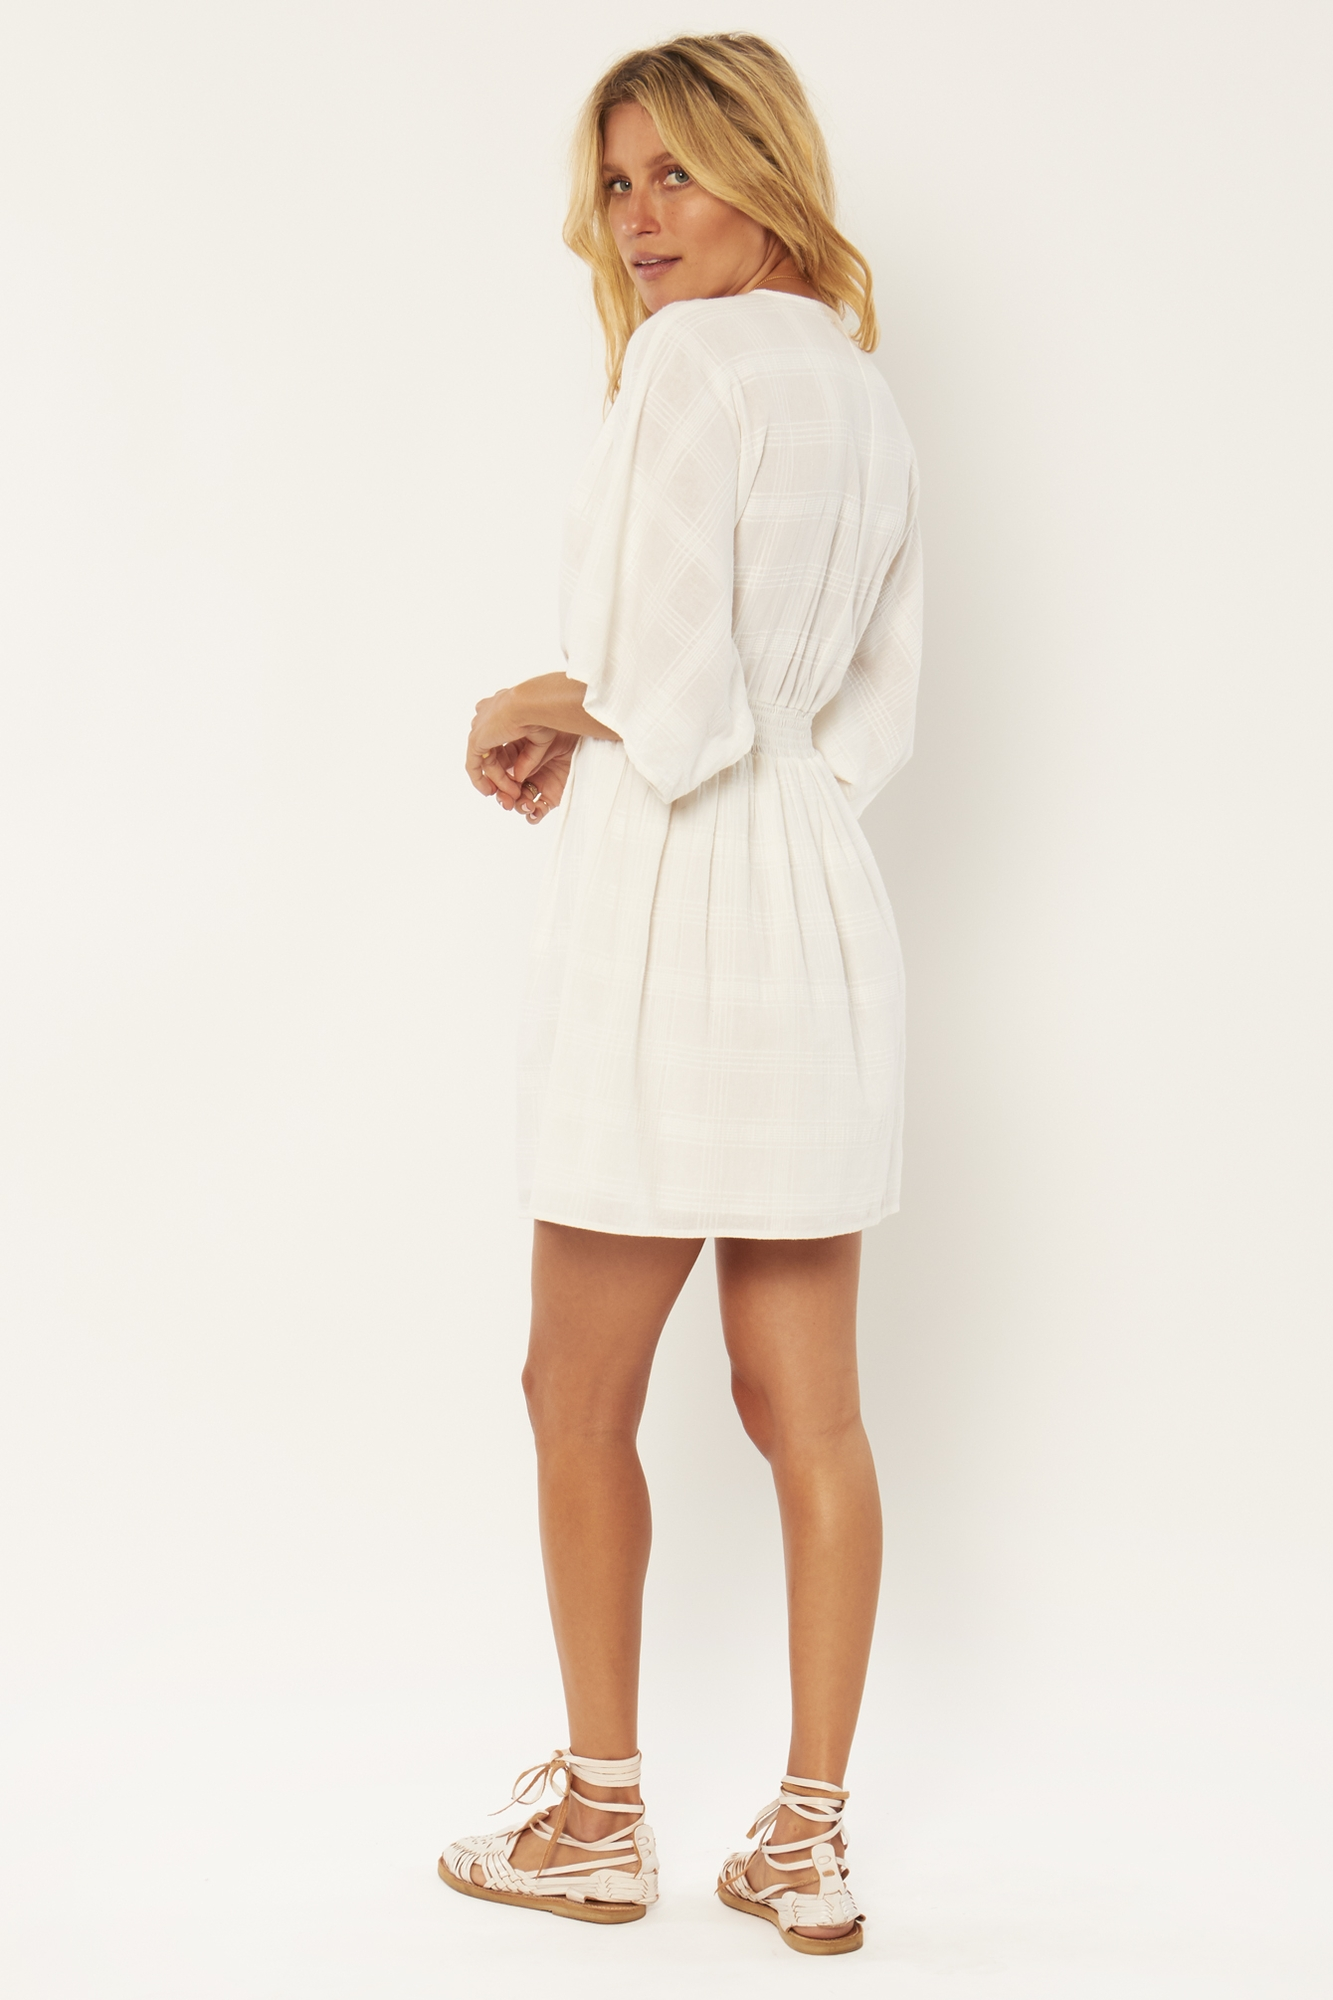 SANDALWOOD WOVEN MINI DRESS